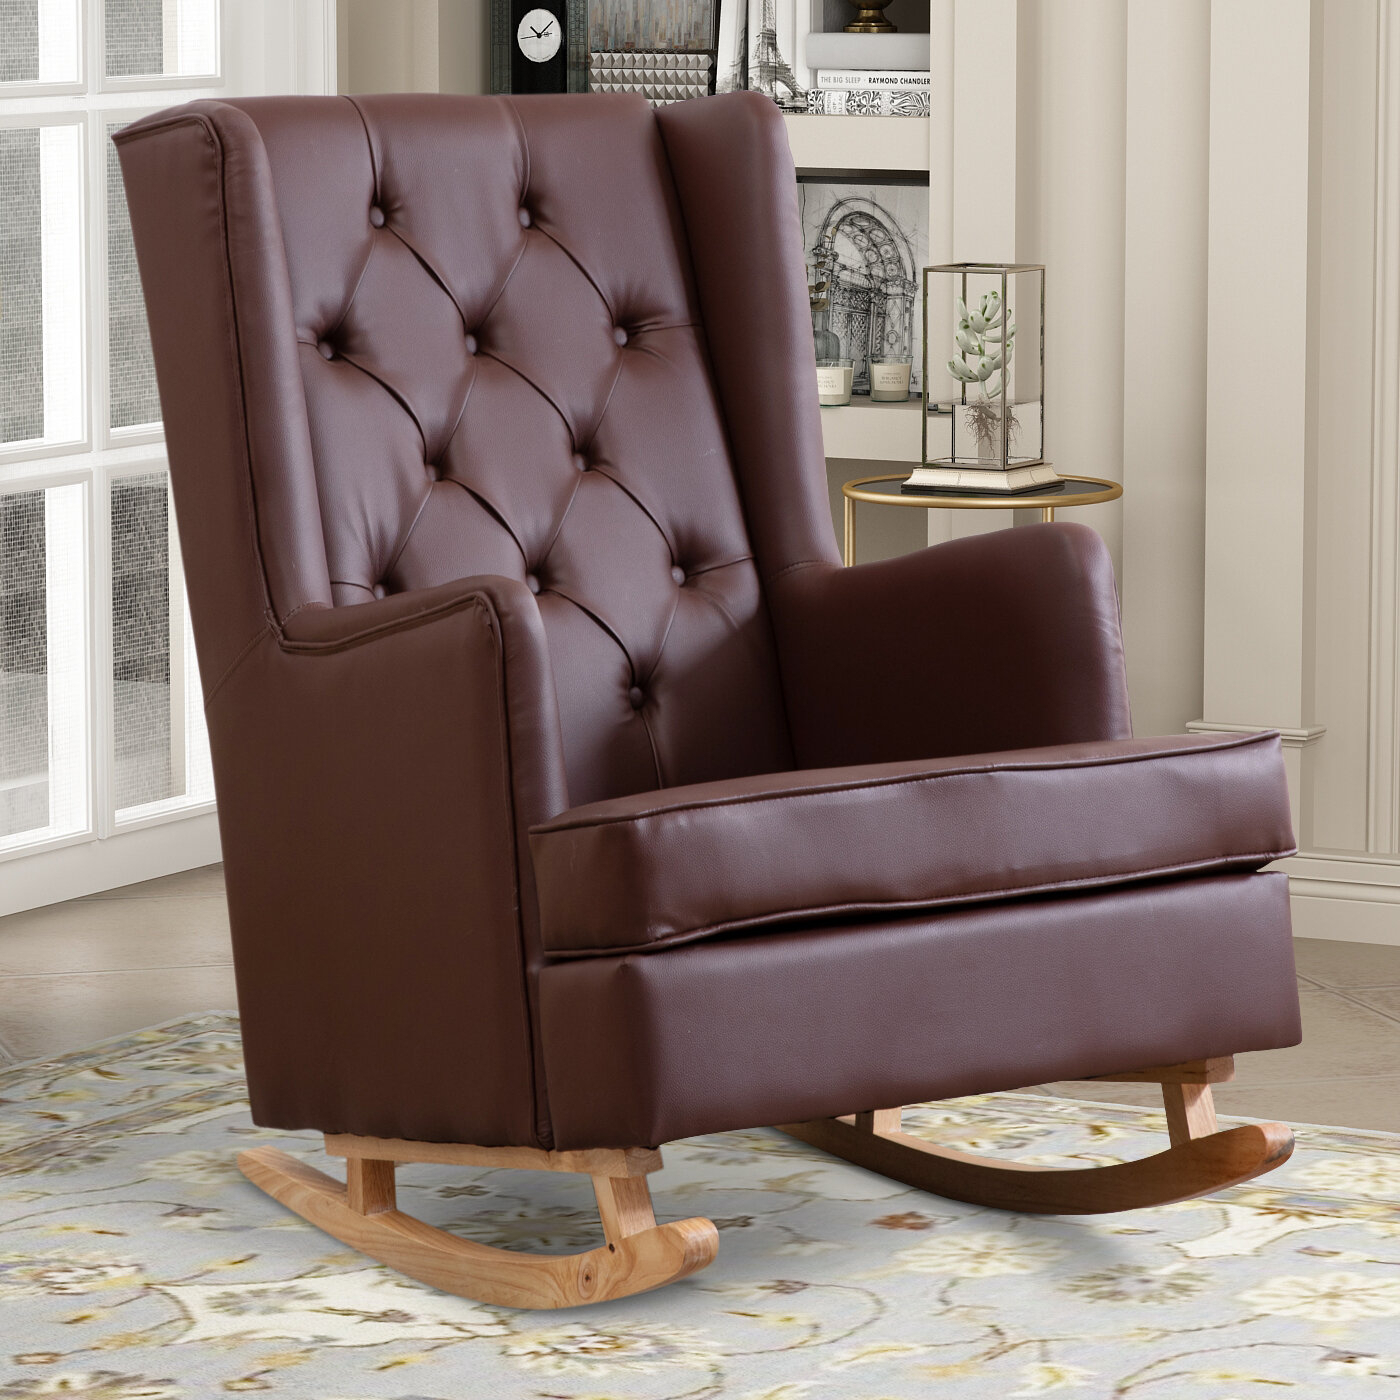 Faux Leather George Oliver Accent Chairs You'Ll Love In 2021 With Regard To Marisa Faux Leather Wingback Chairs (View 8 of 15)